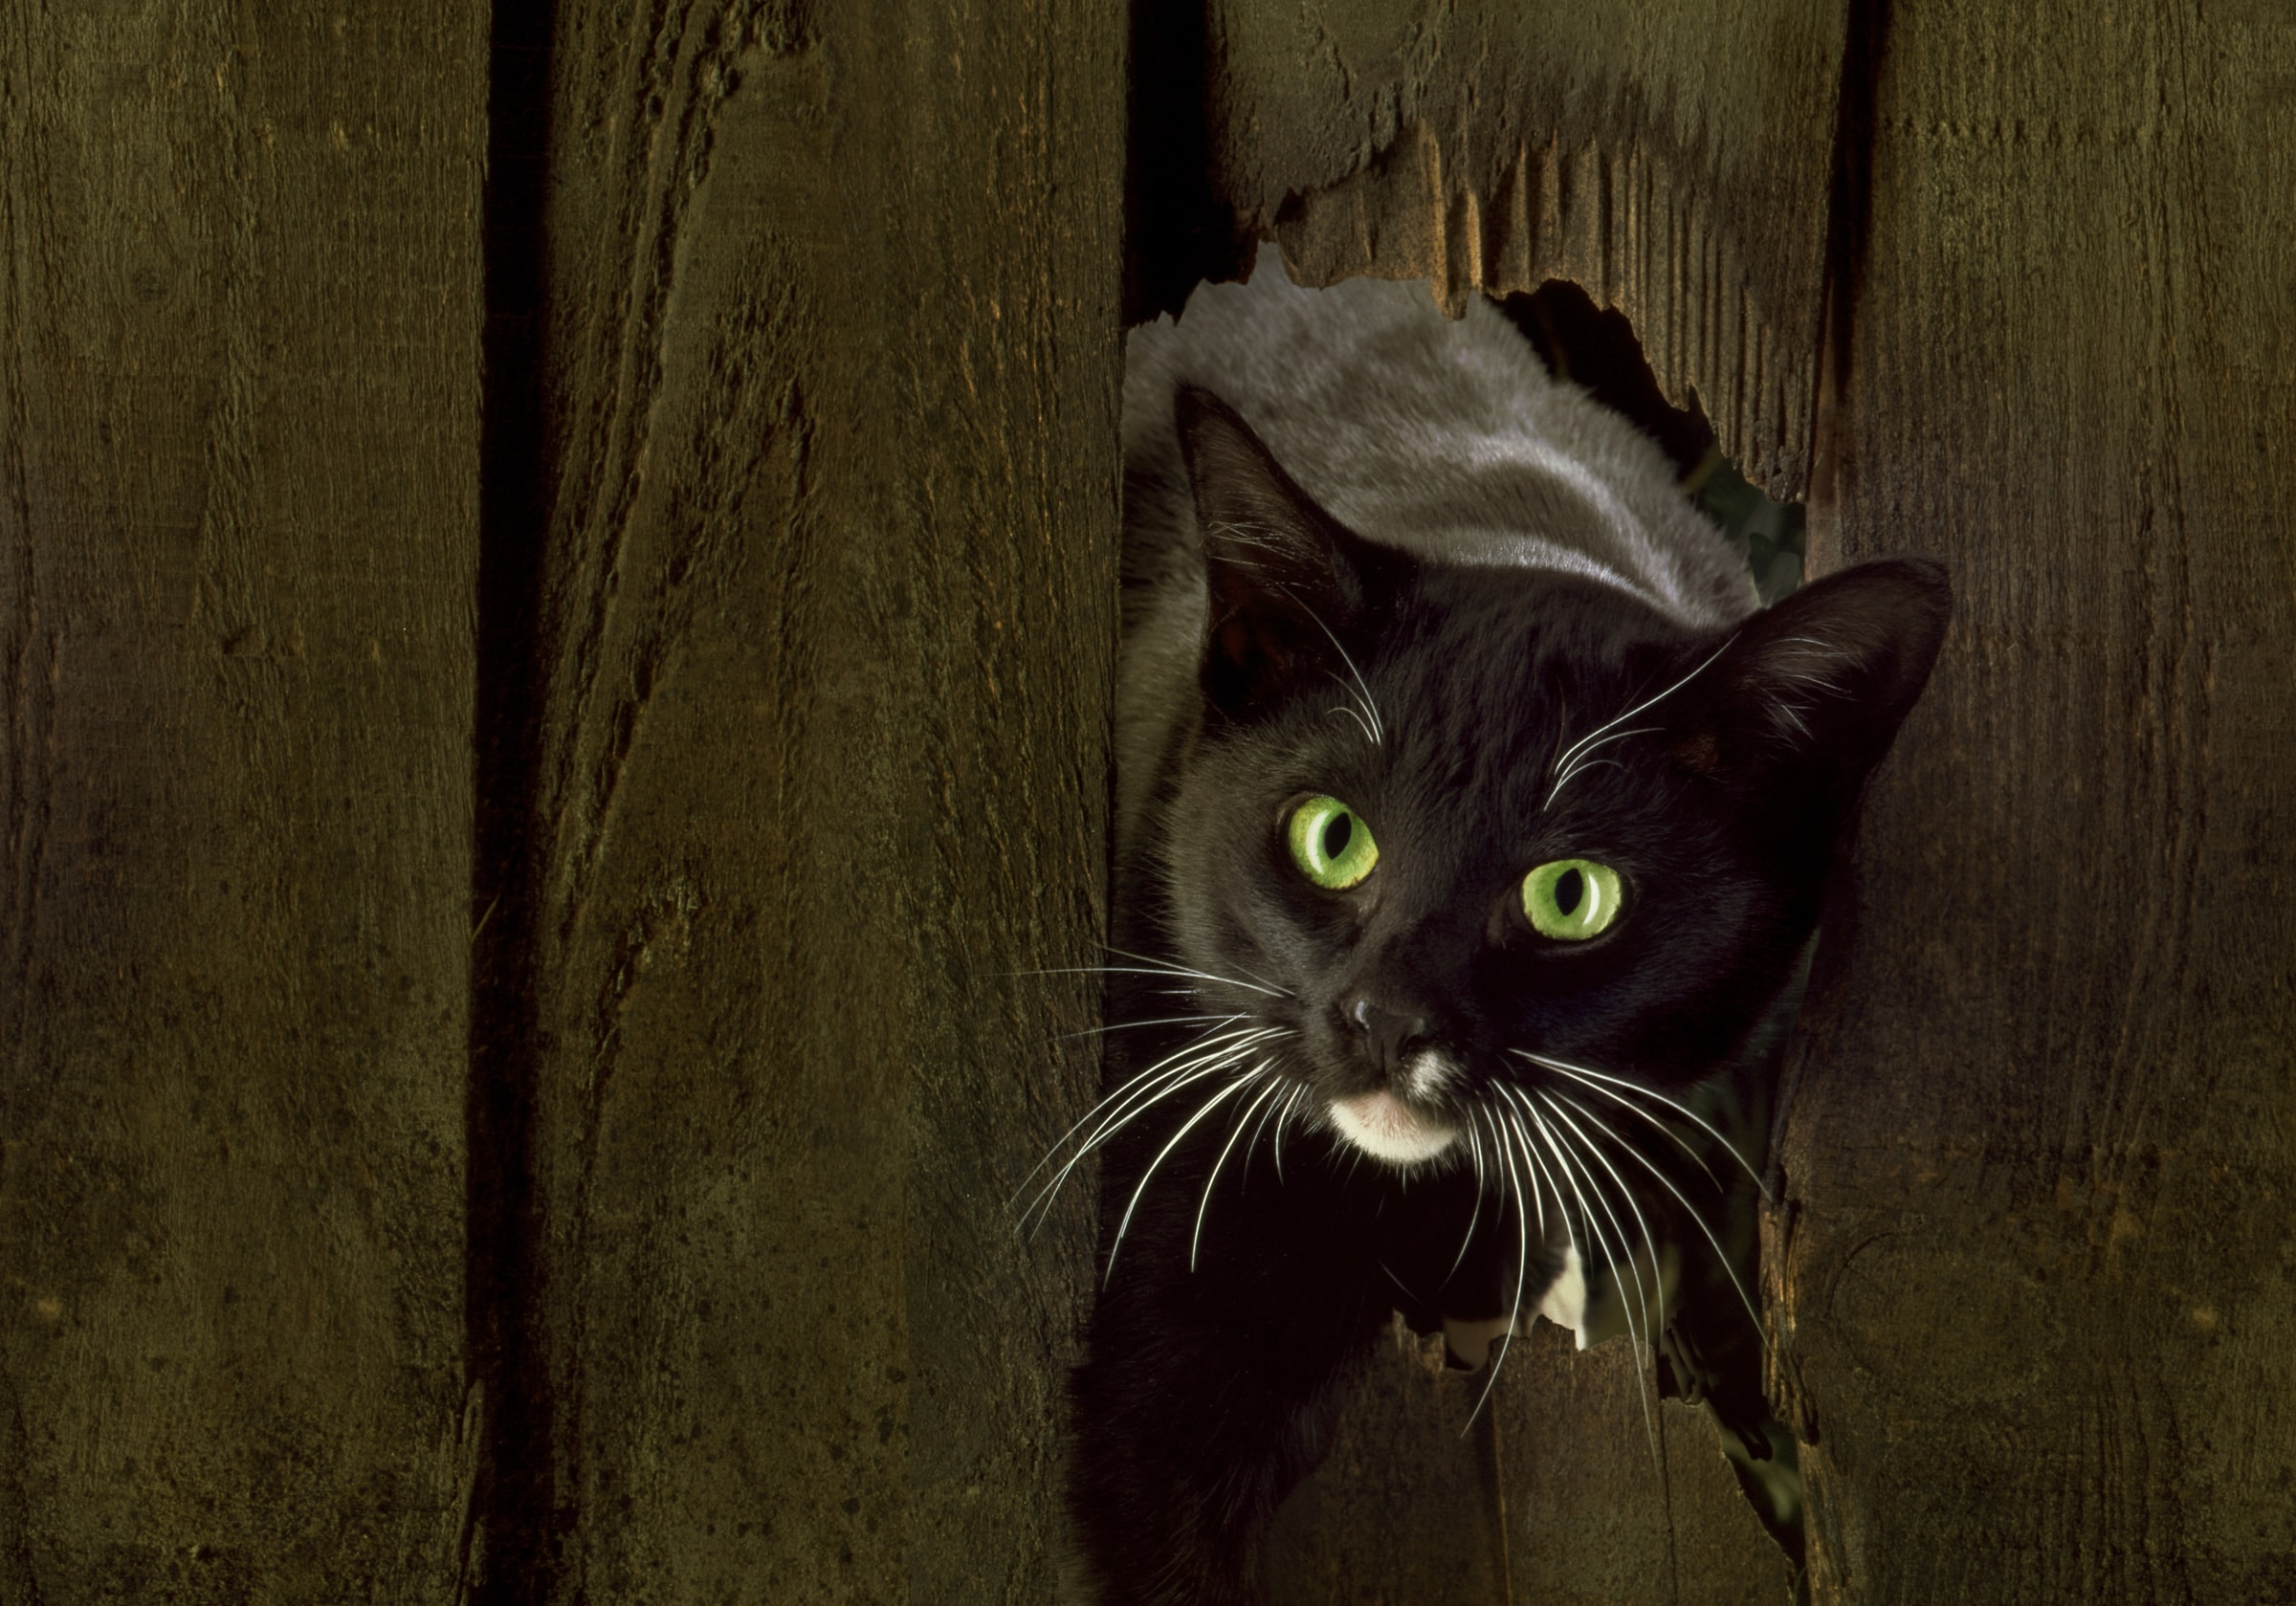 Cat through fence by Paul Bussell